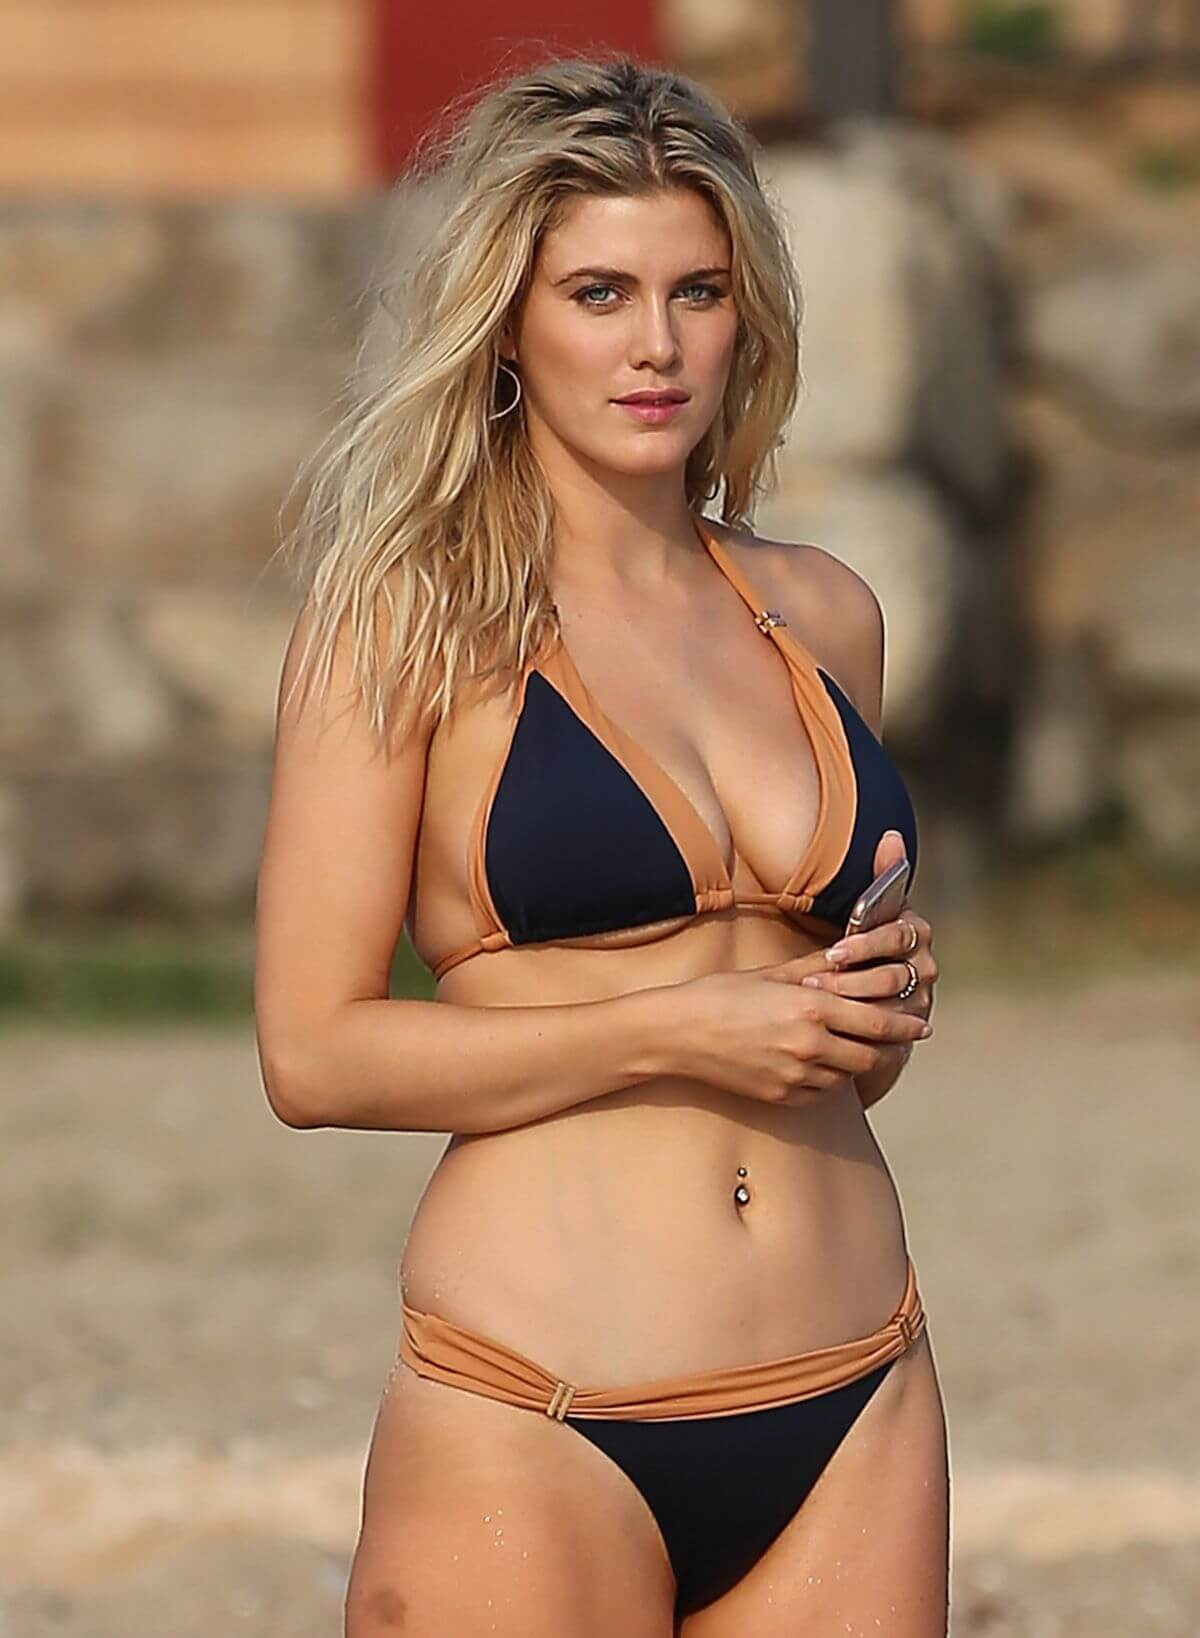 Ashley James Hot in Bikini at a Beach in Ibiza Photos